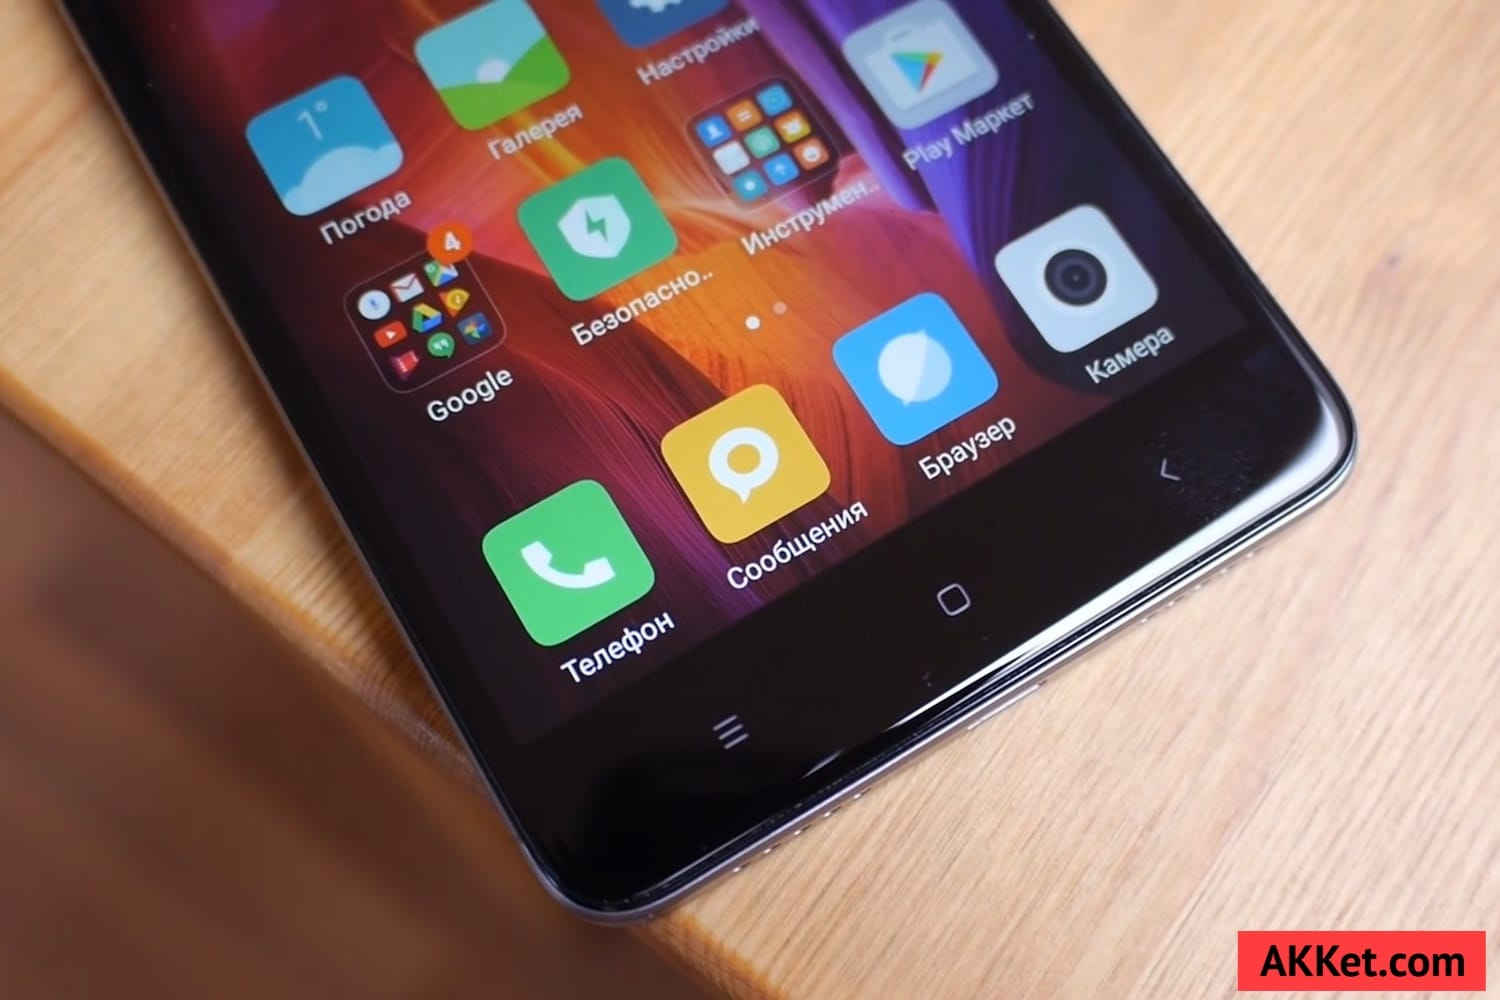 Xiaomi Redmi Note 4X Review AKKet.com 2